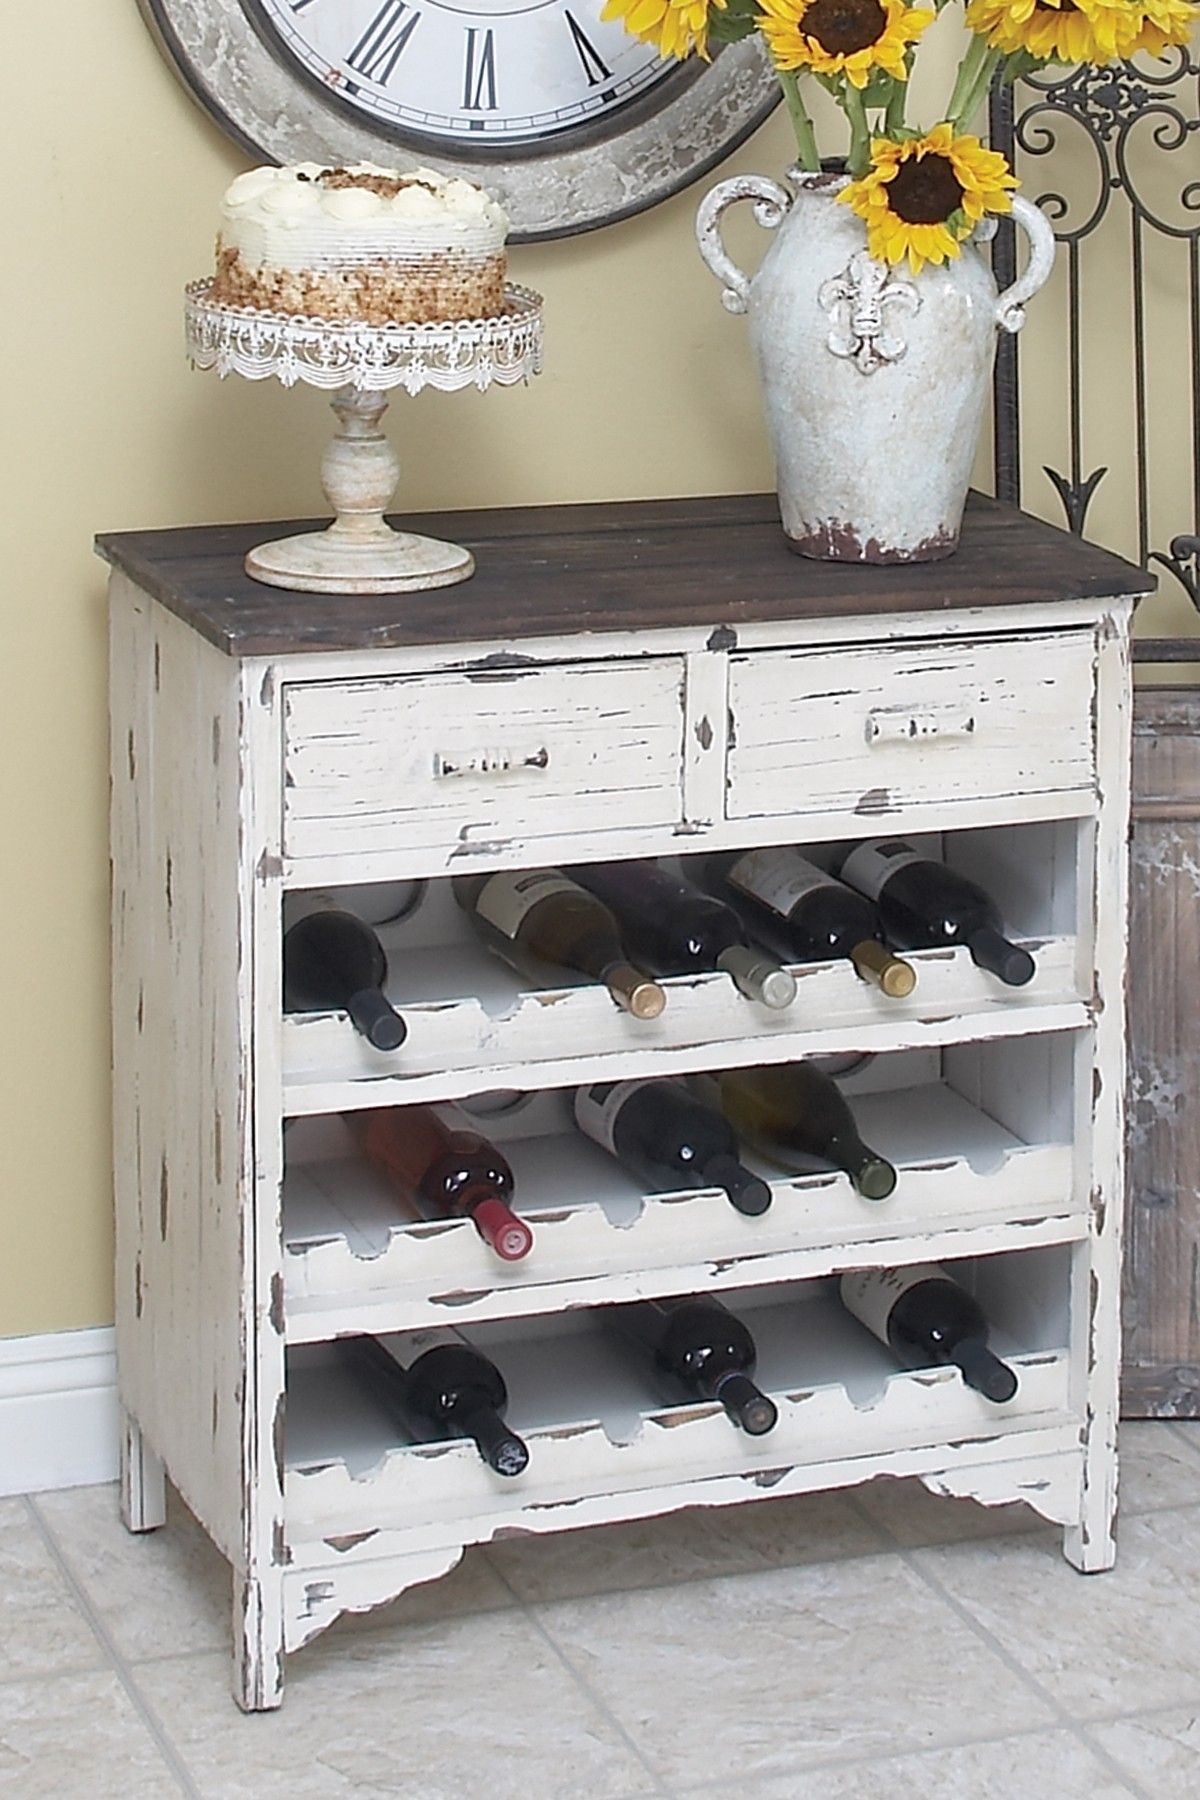 Wine Cabinet From An Old Dresser Lots Of Other Repurpose Ideas Too Unique Ways To The Into Something Diffe Love All Diy